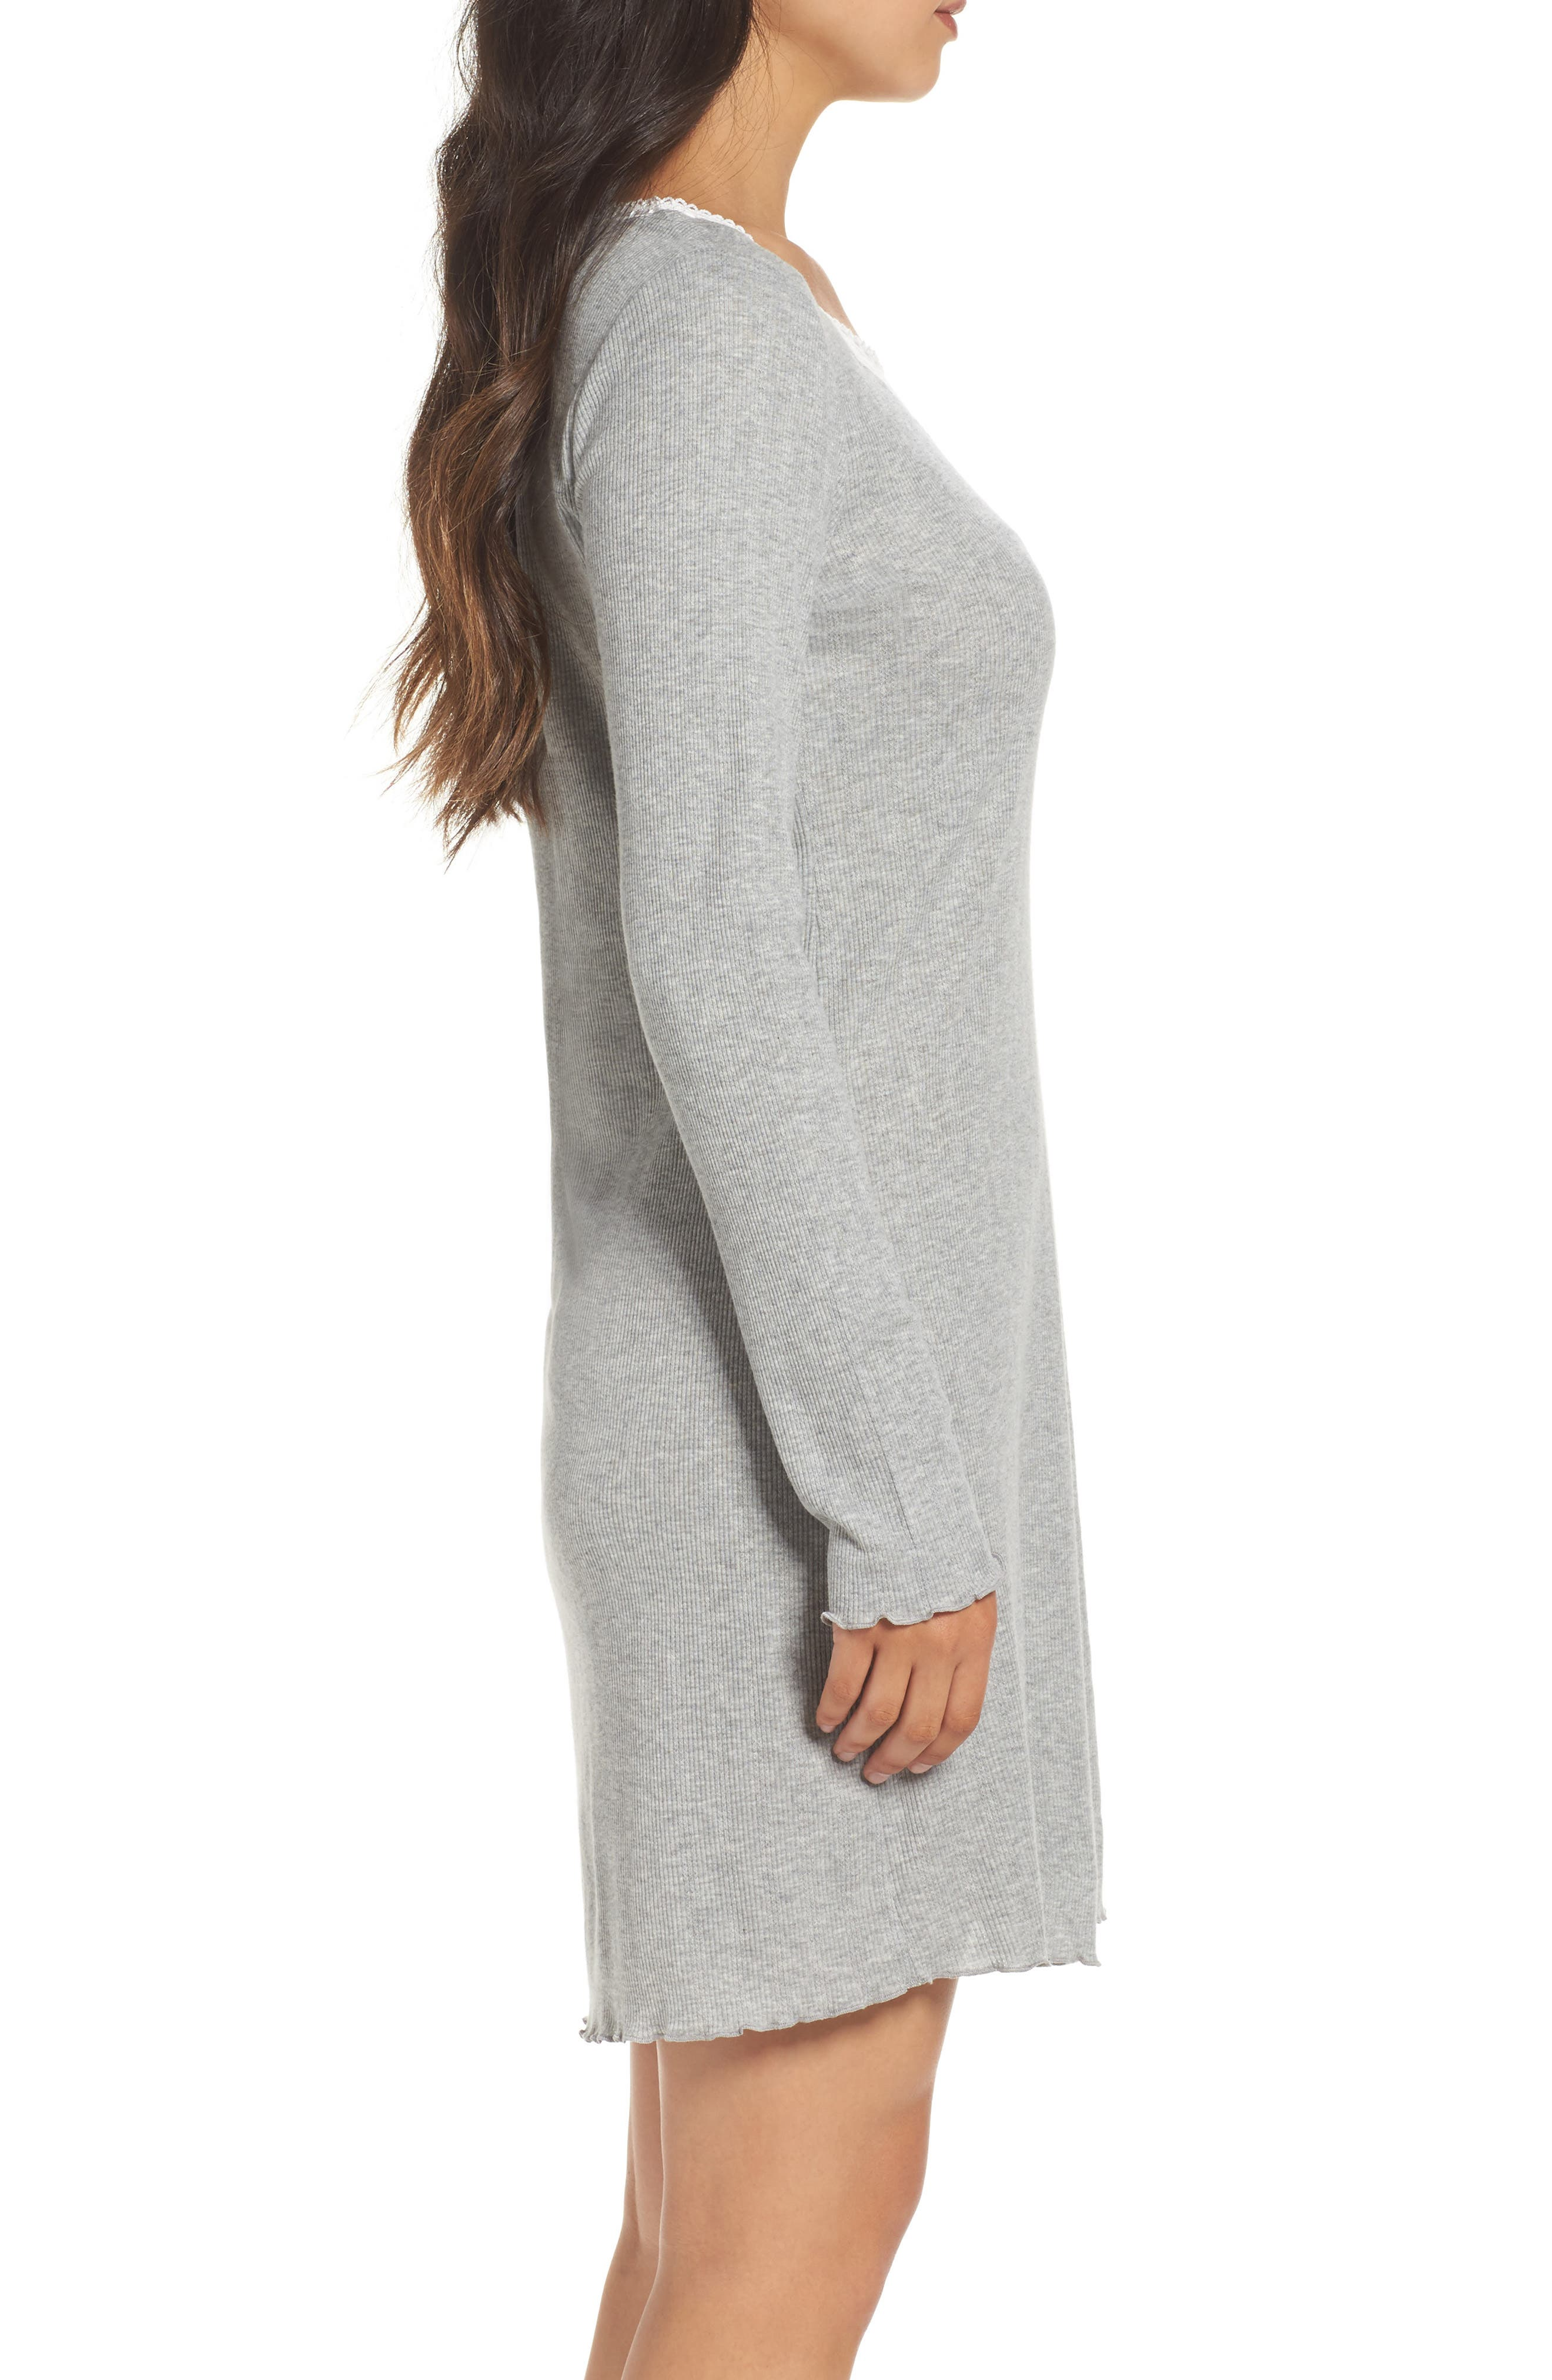 Lace Neck Sleep Shirt,                             Alternate thumbnail 3, color,                             Grey Heather